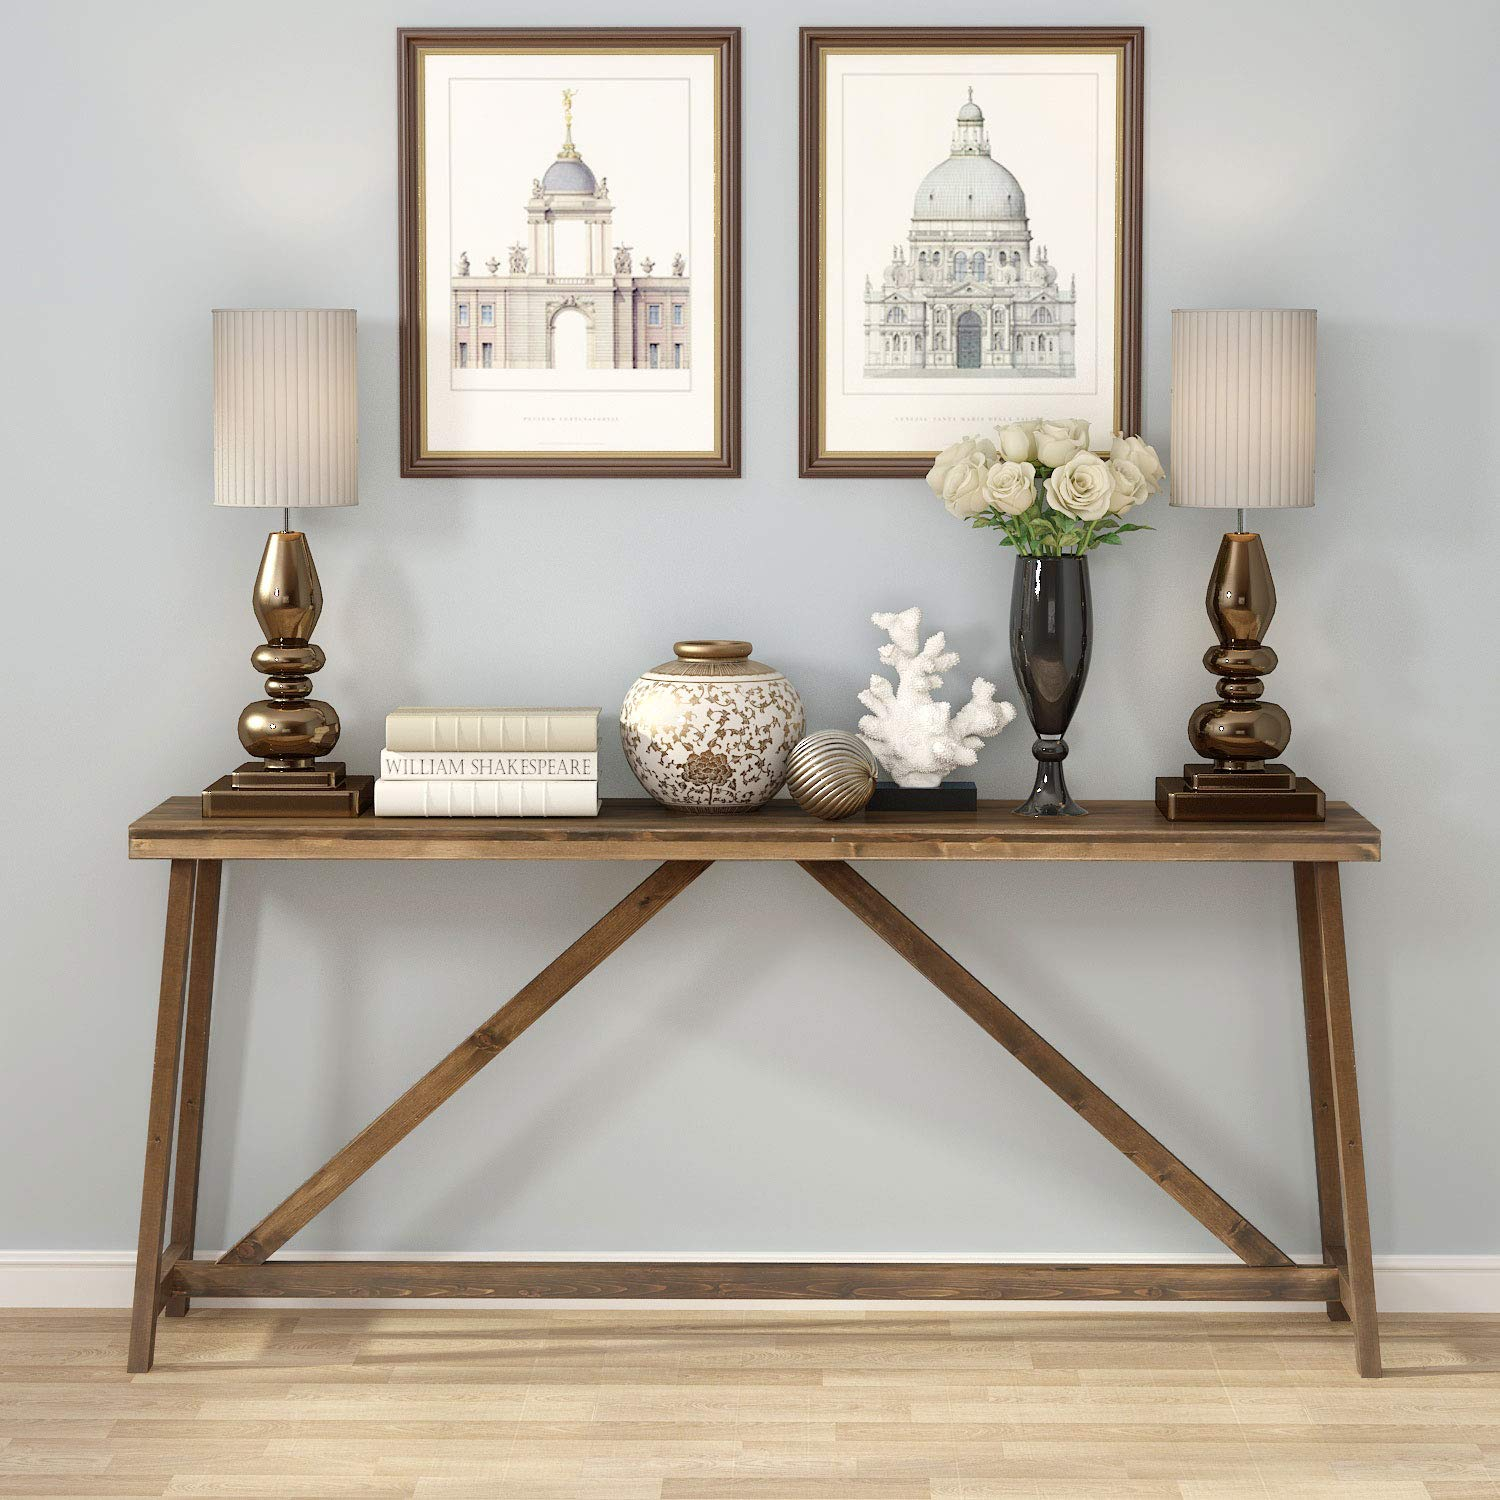 extra-long-console-table-solid-wood-design-for-rustic-modern-interior-design